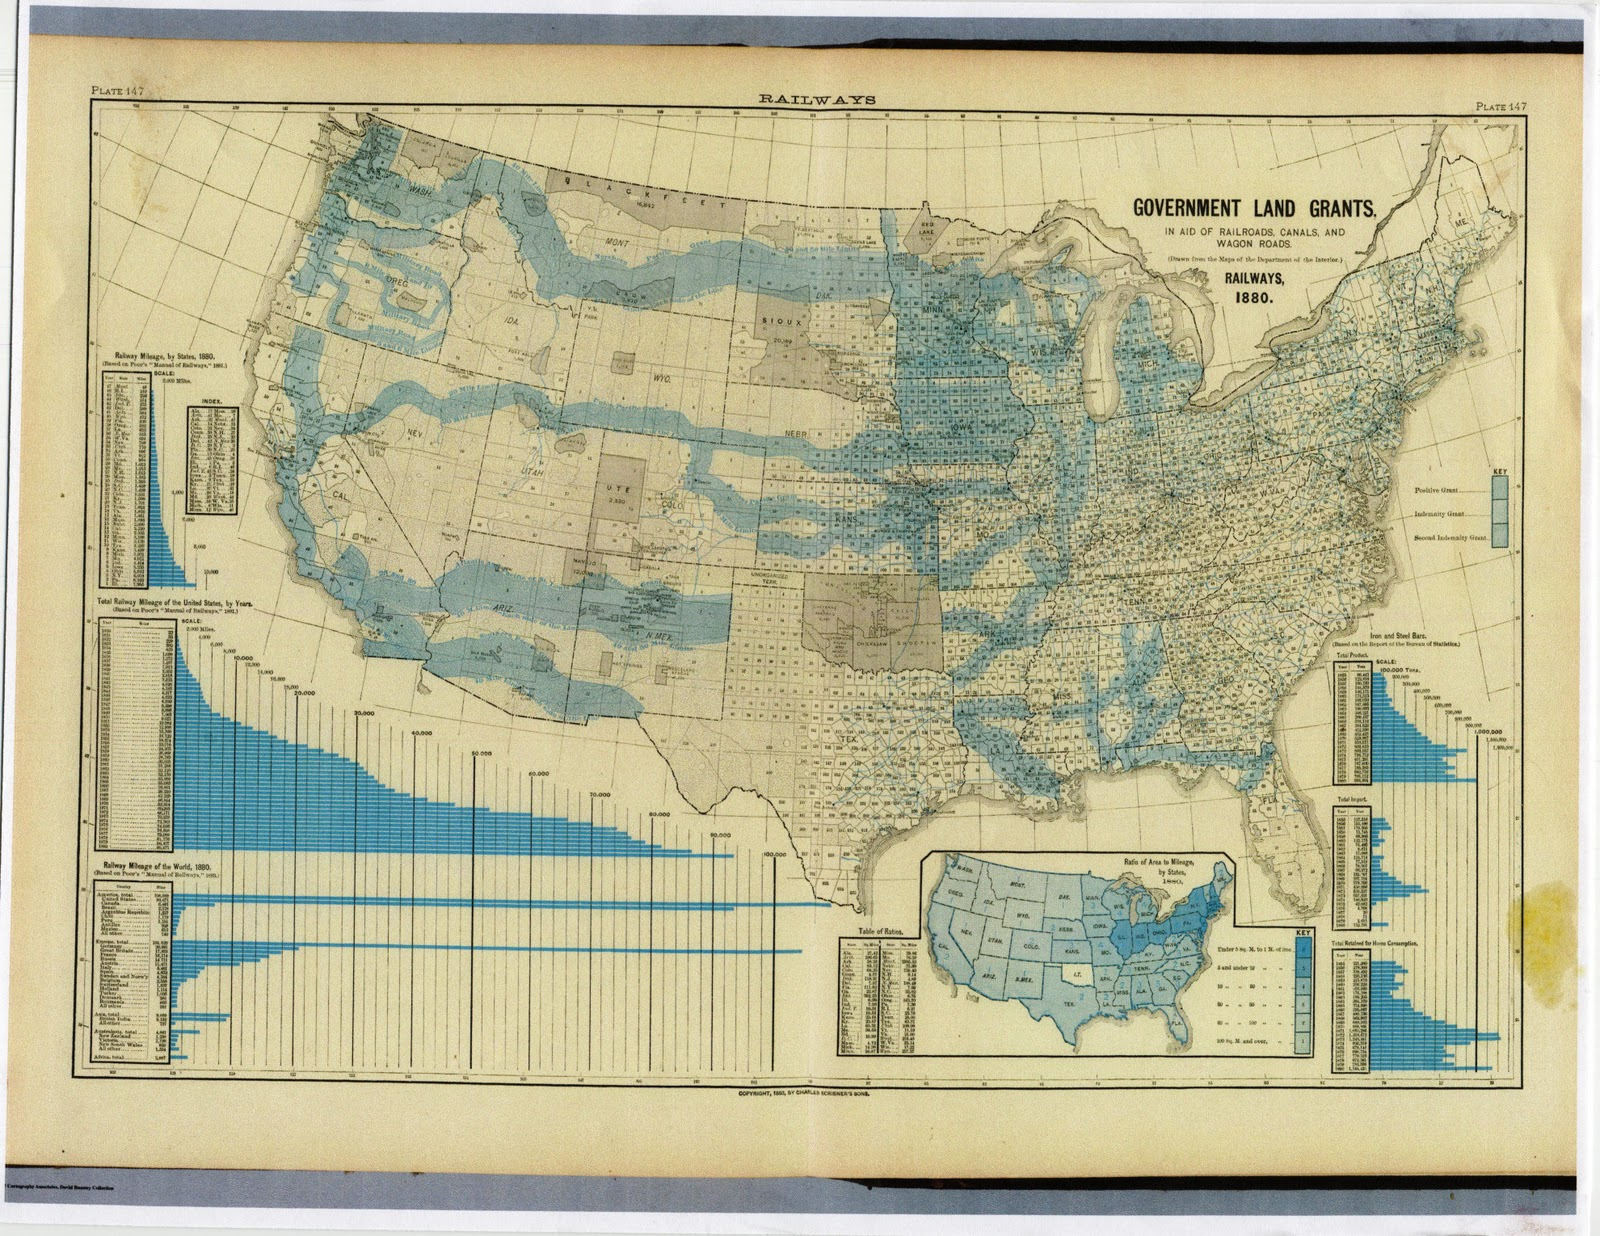 1880 us general land office map showing land grants for railroads wagon roads and canals http www davidrumsey com